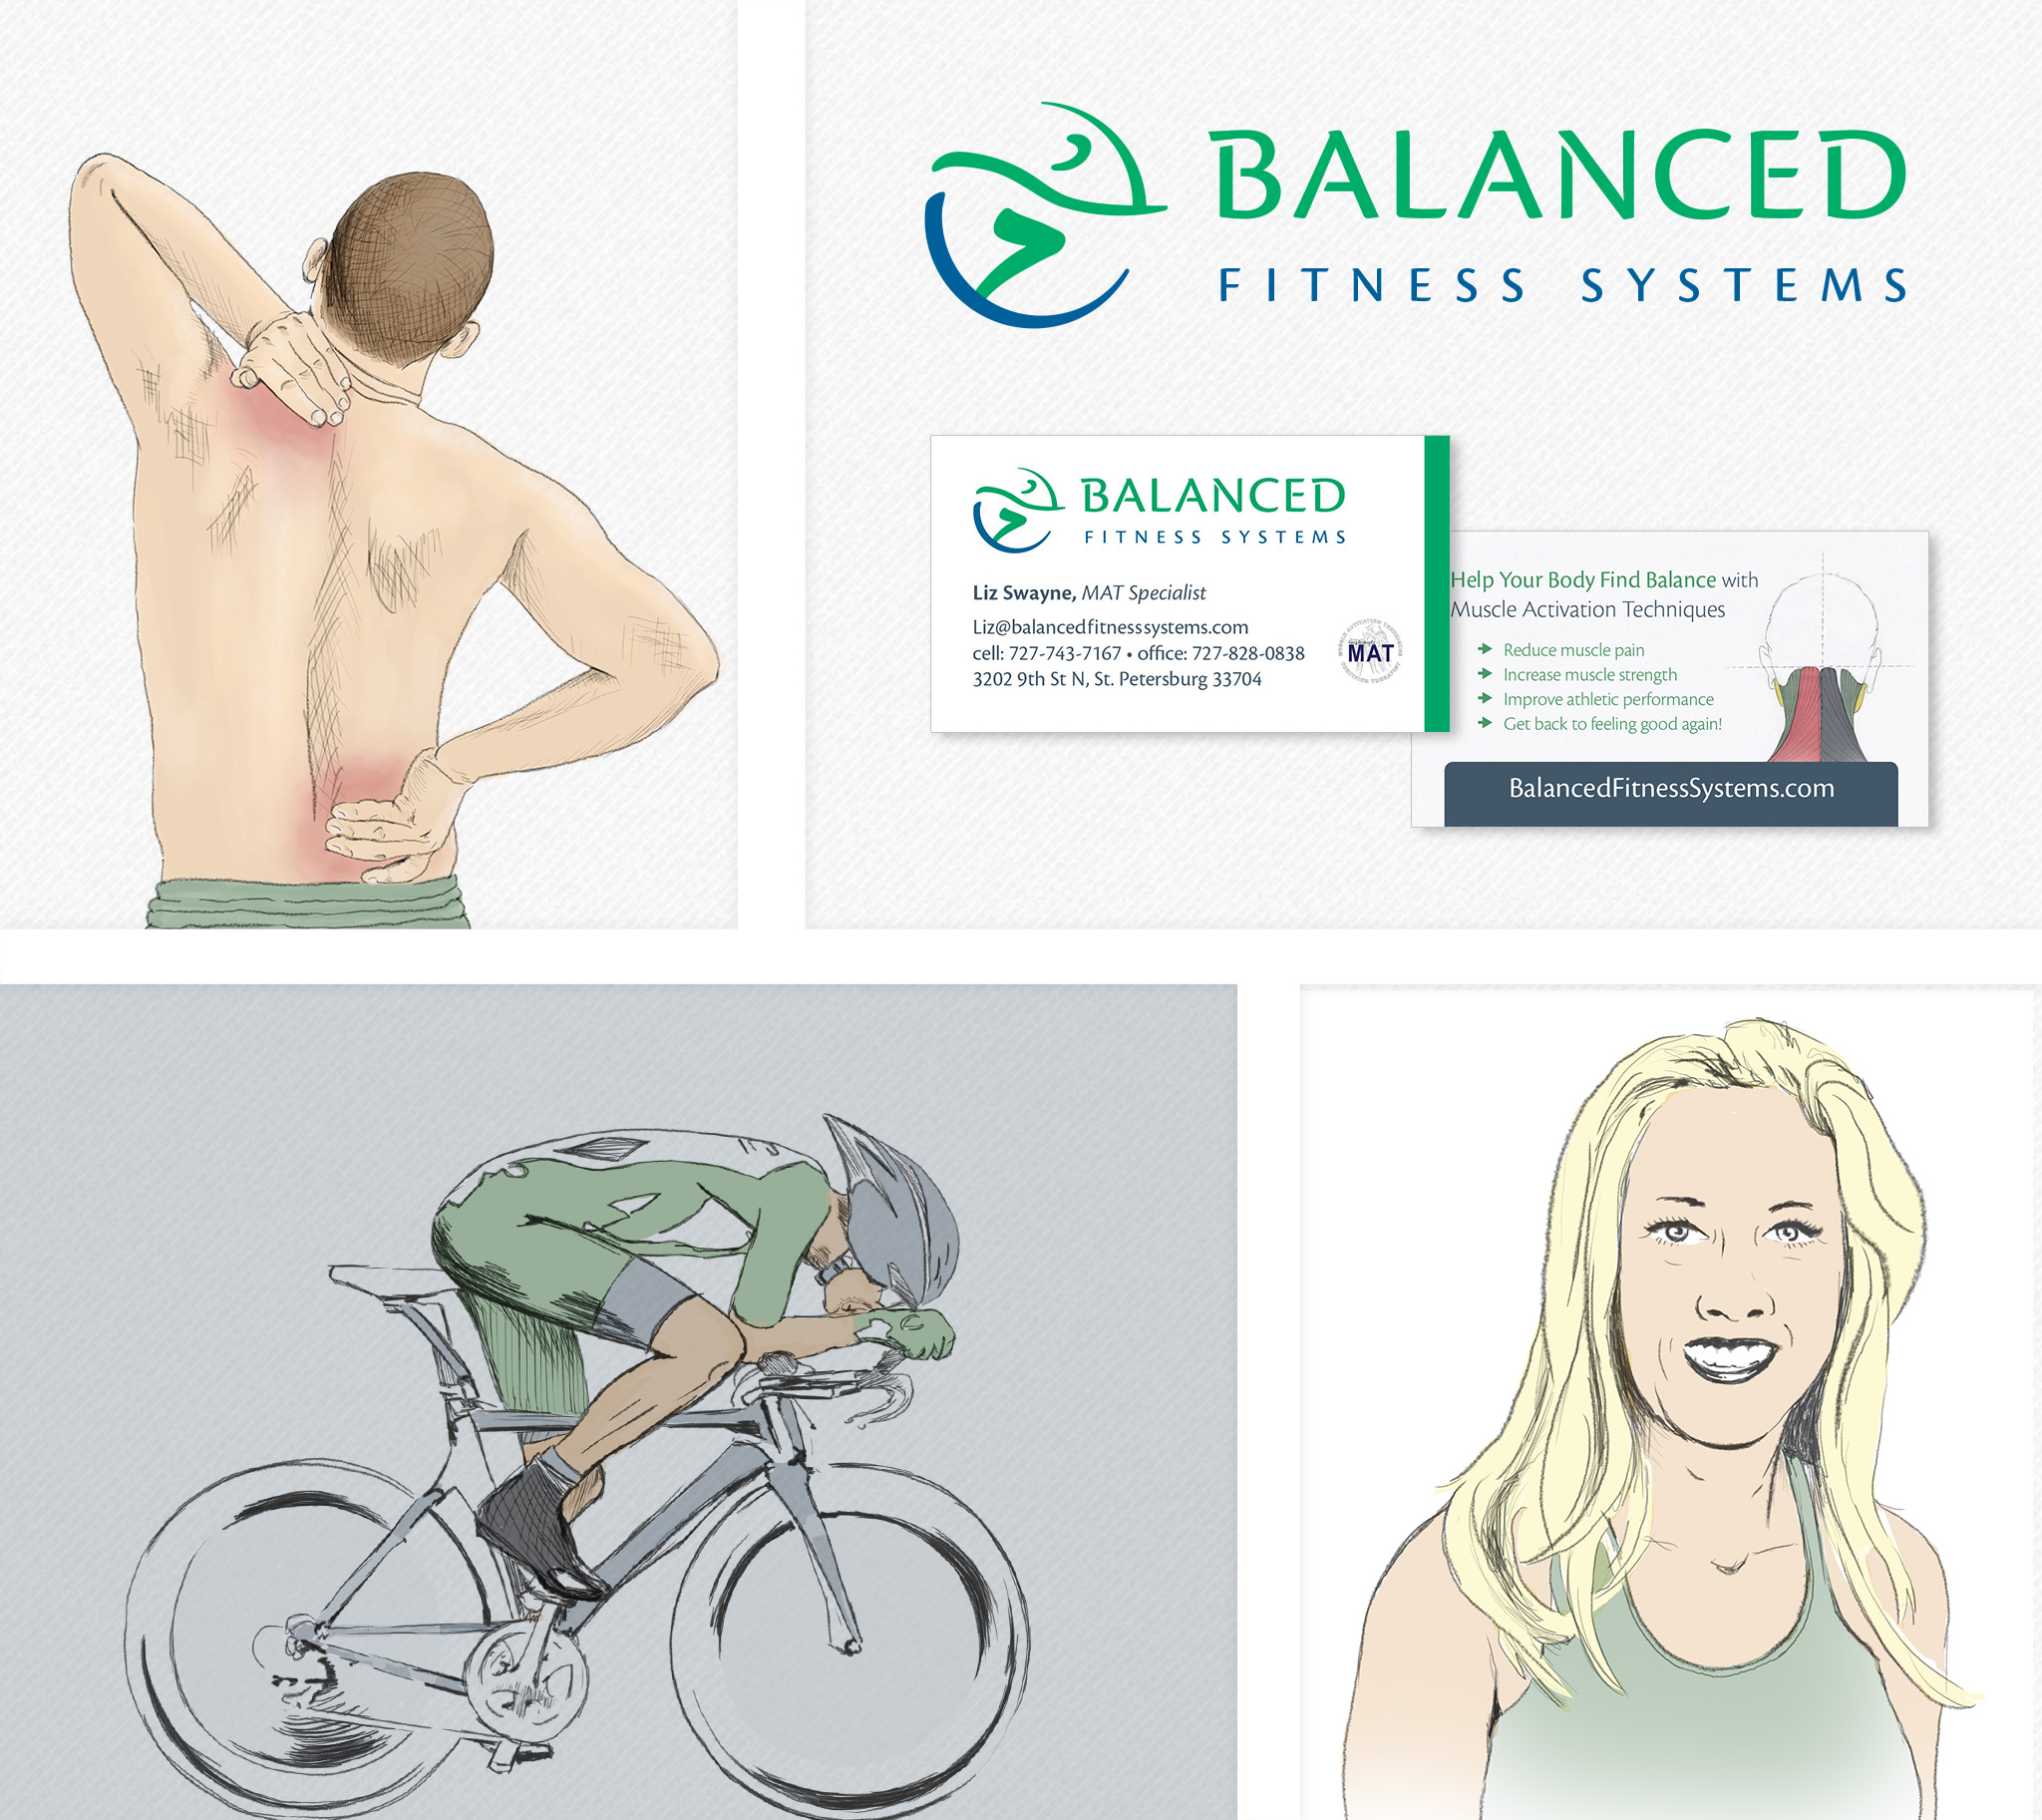 Balanced Fitness Systems Illustration and Branding Showcase